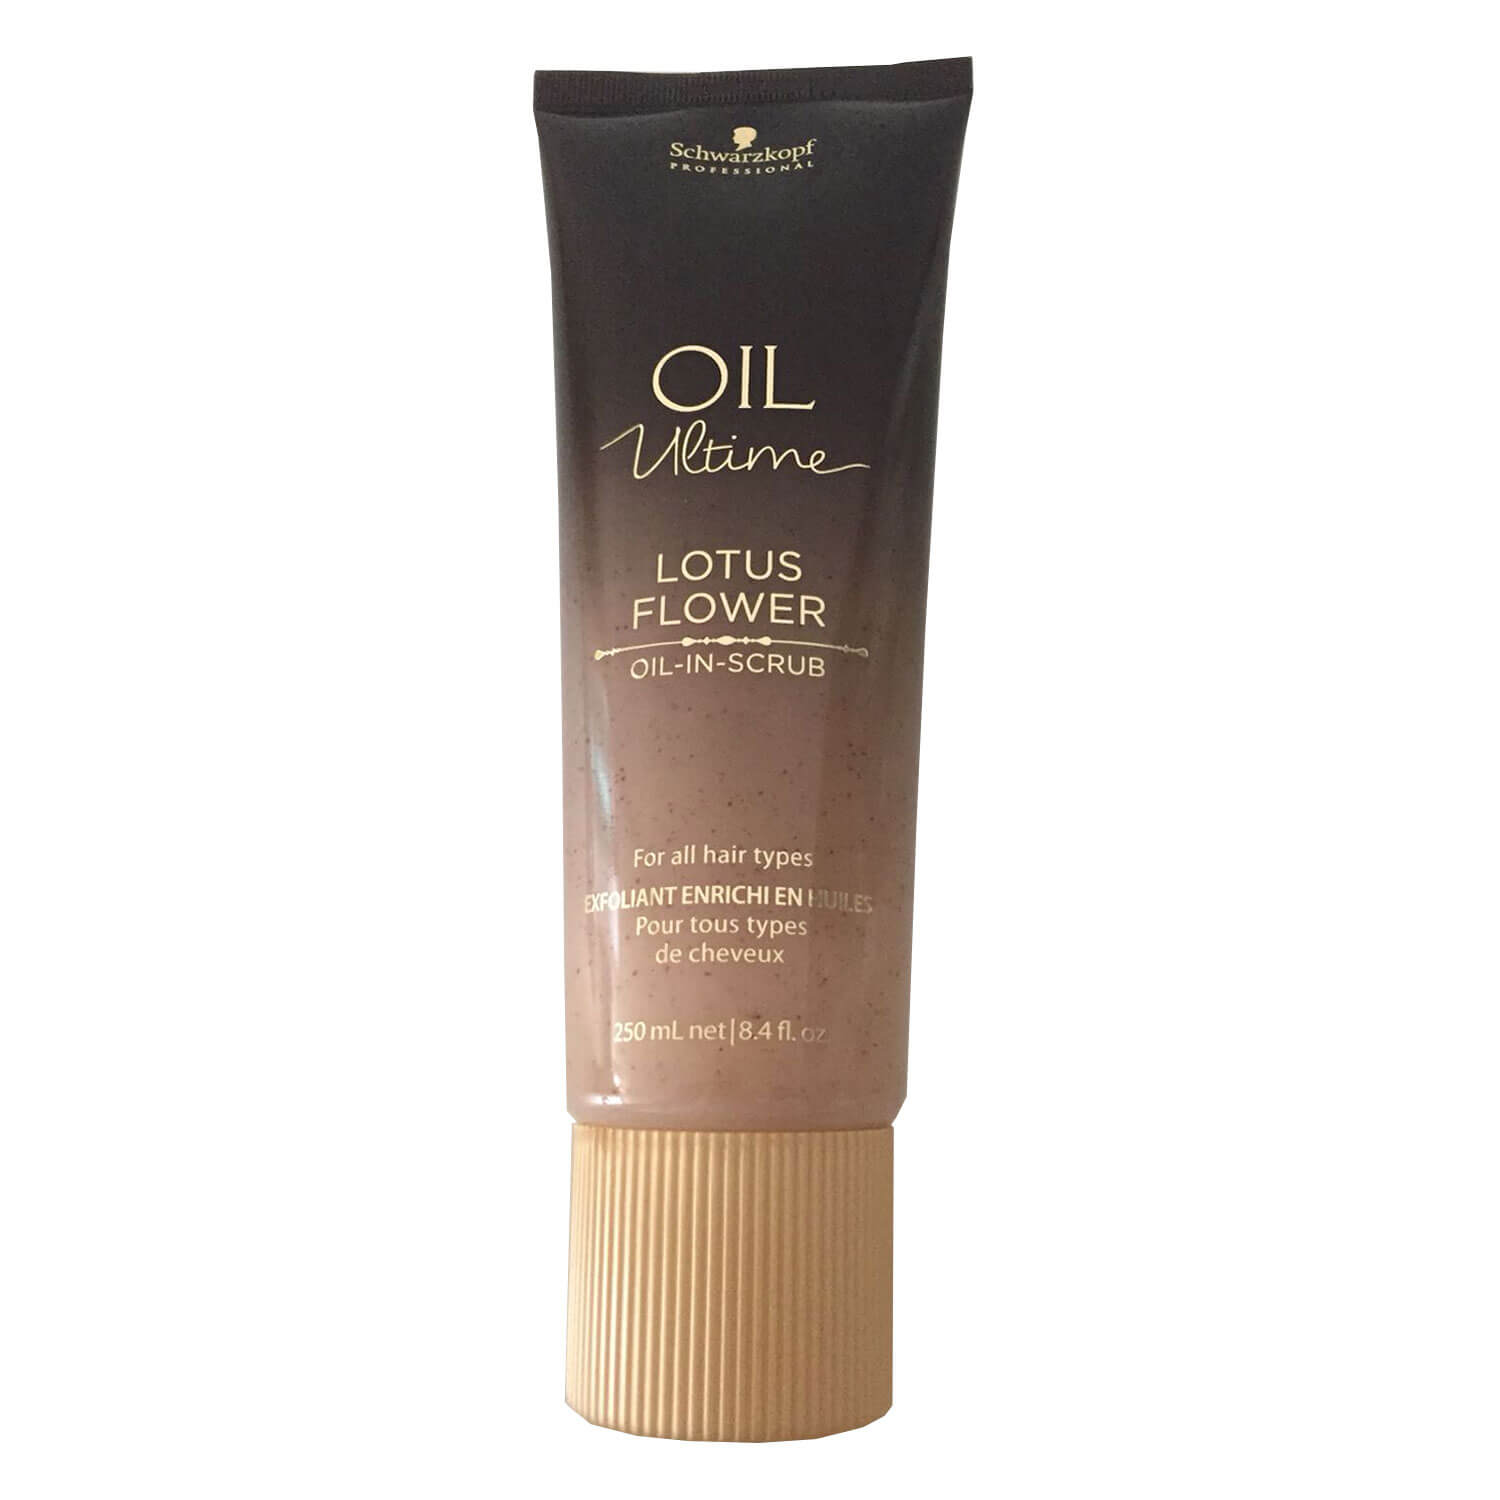 Oil Ultime - Oil-In Scrub